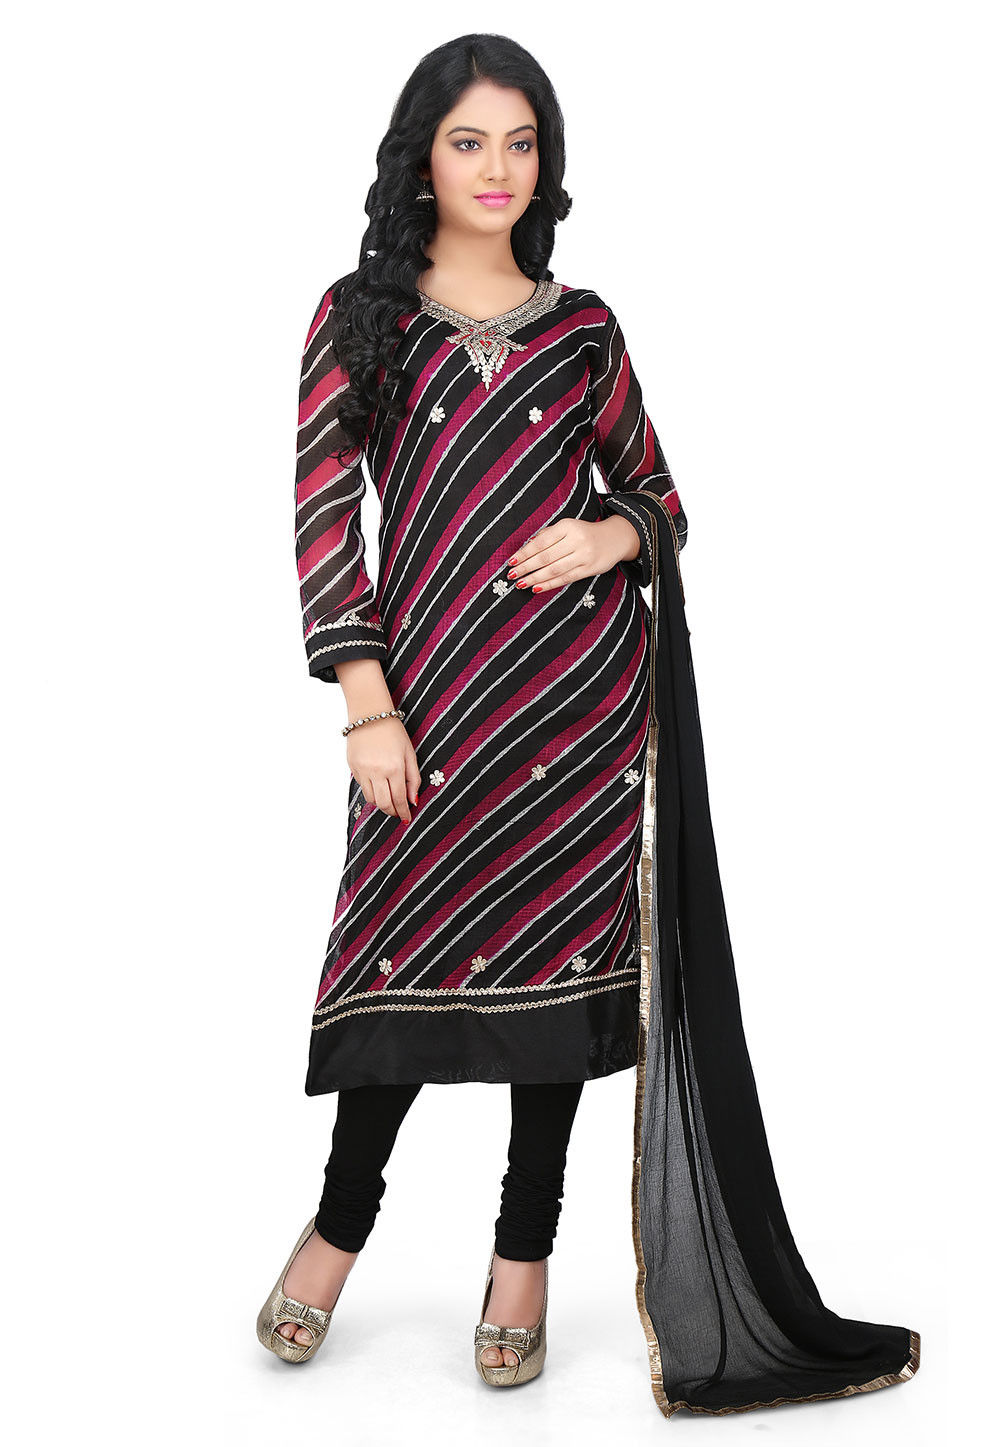 Embroidered Pure Kota Silk Straight Cut Suit in Black and Red